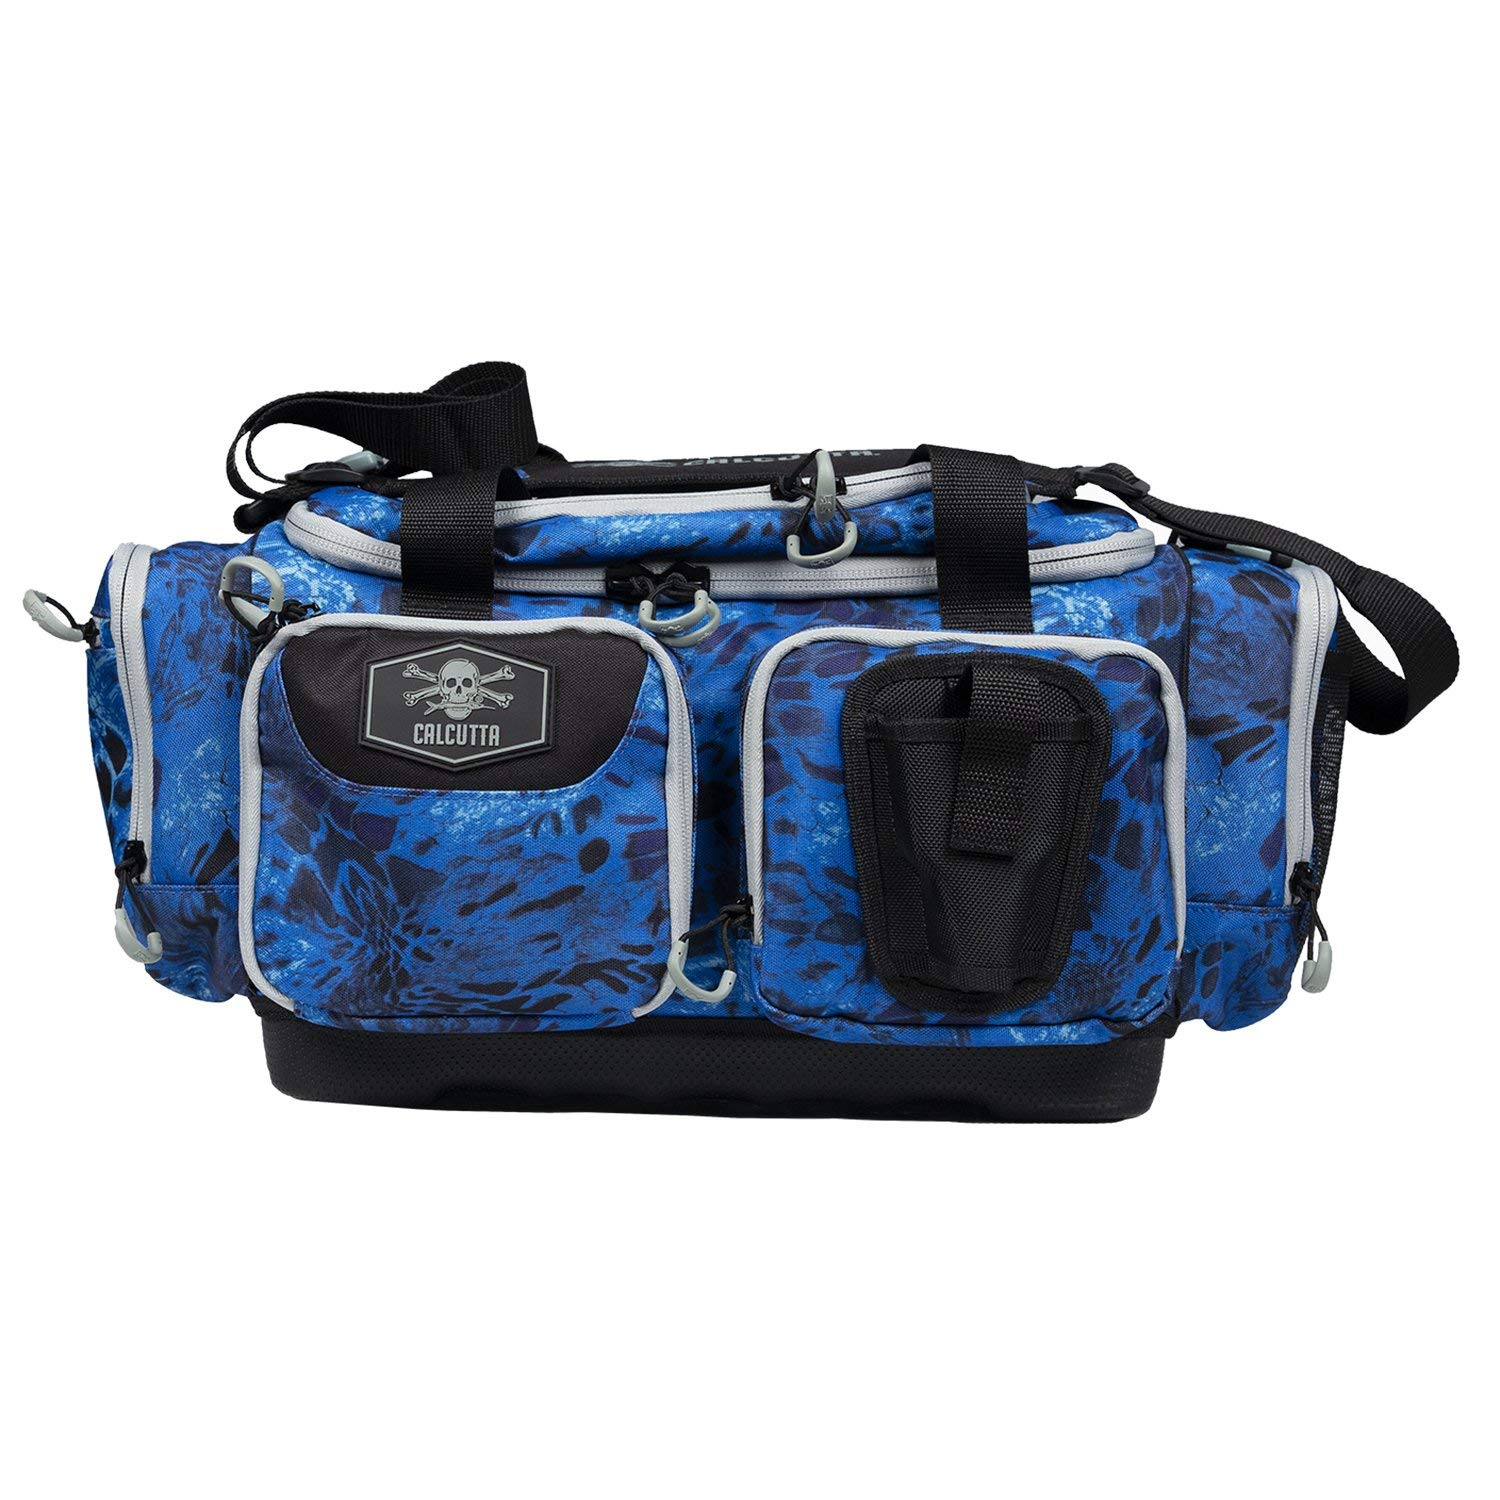 Calcutta Squall Binder 3700 Tackle Bag Combo